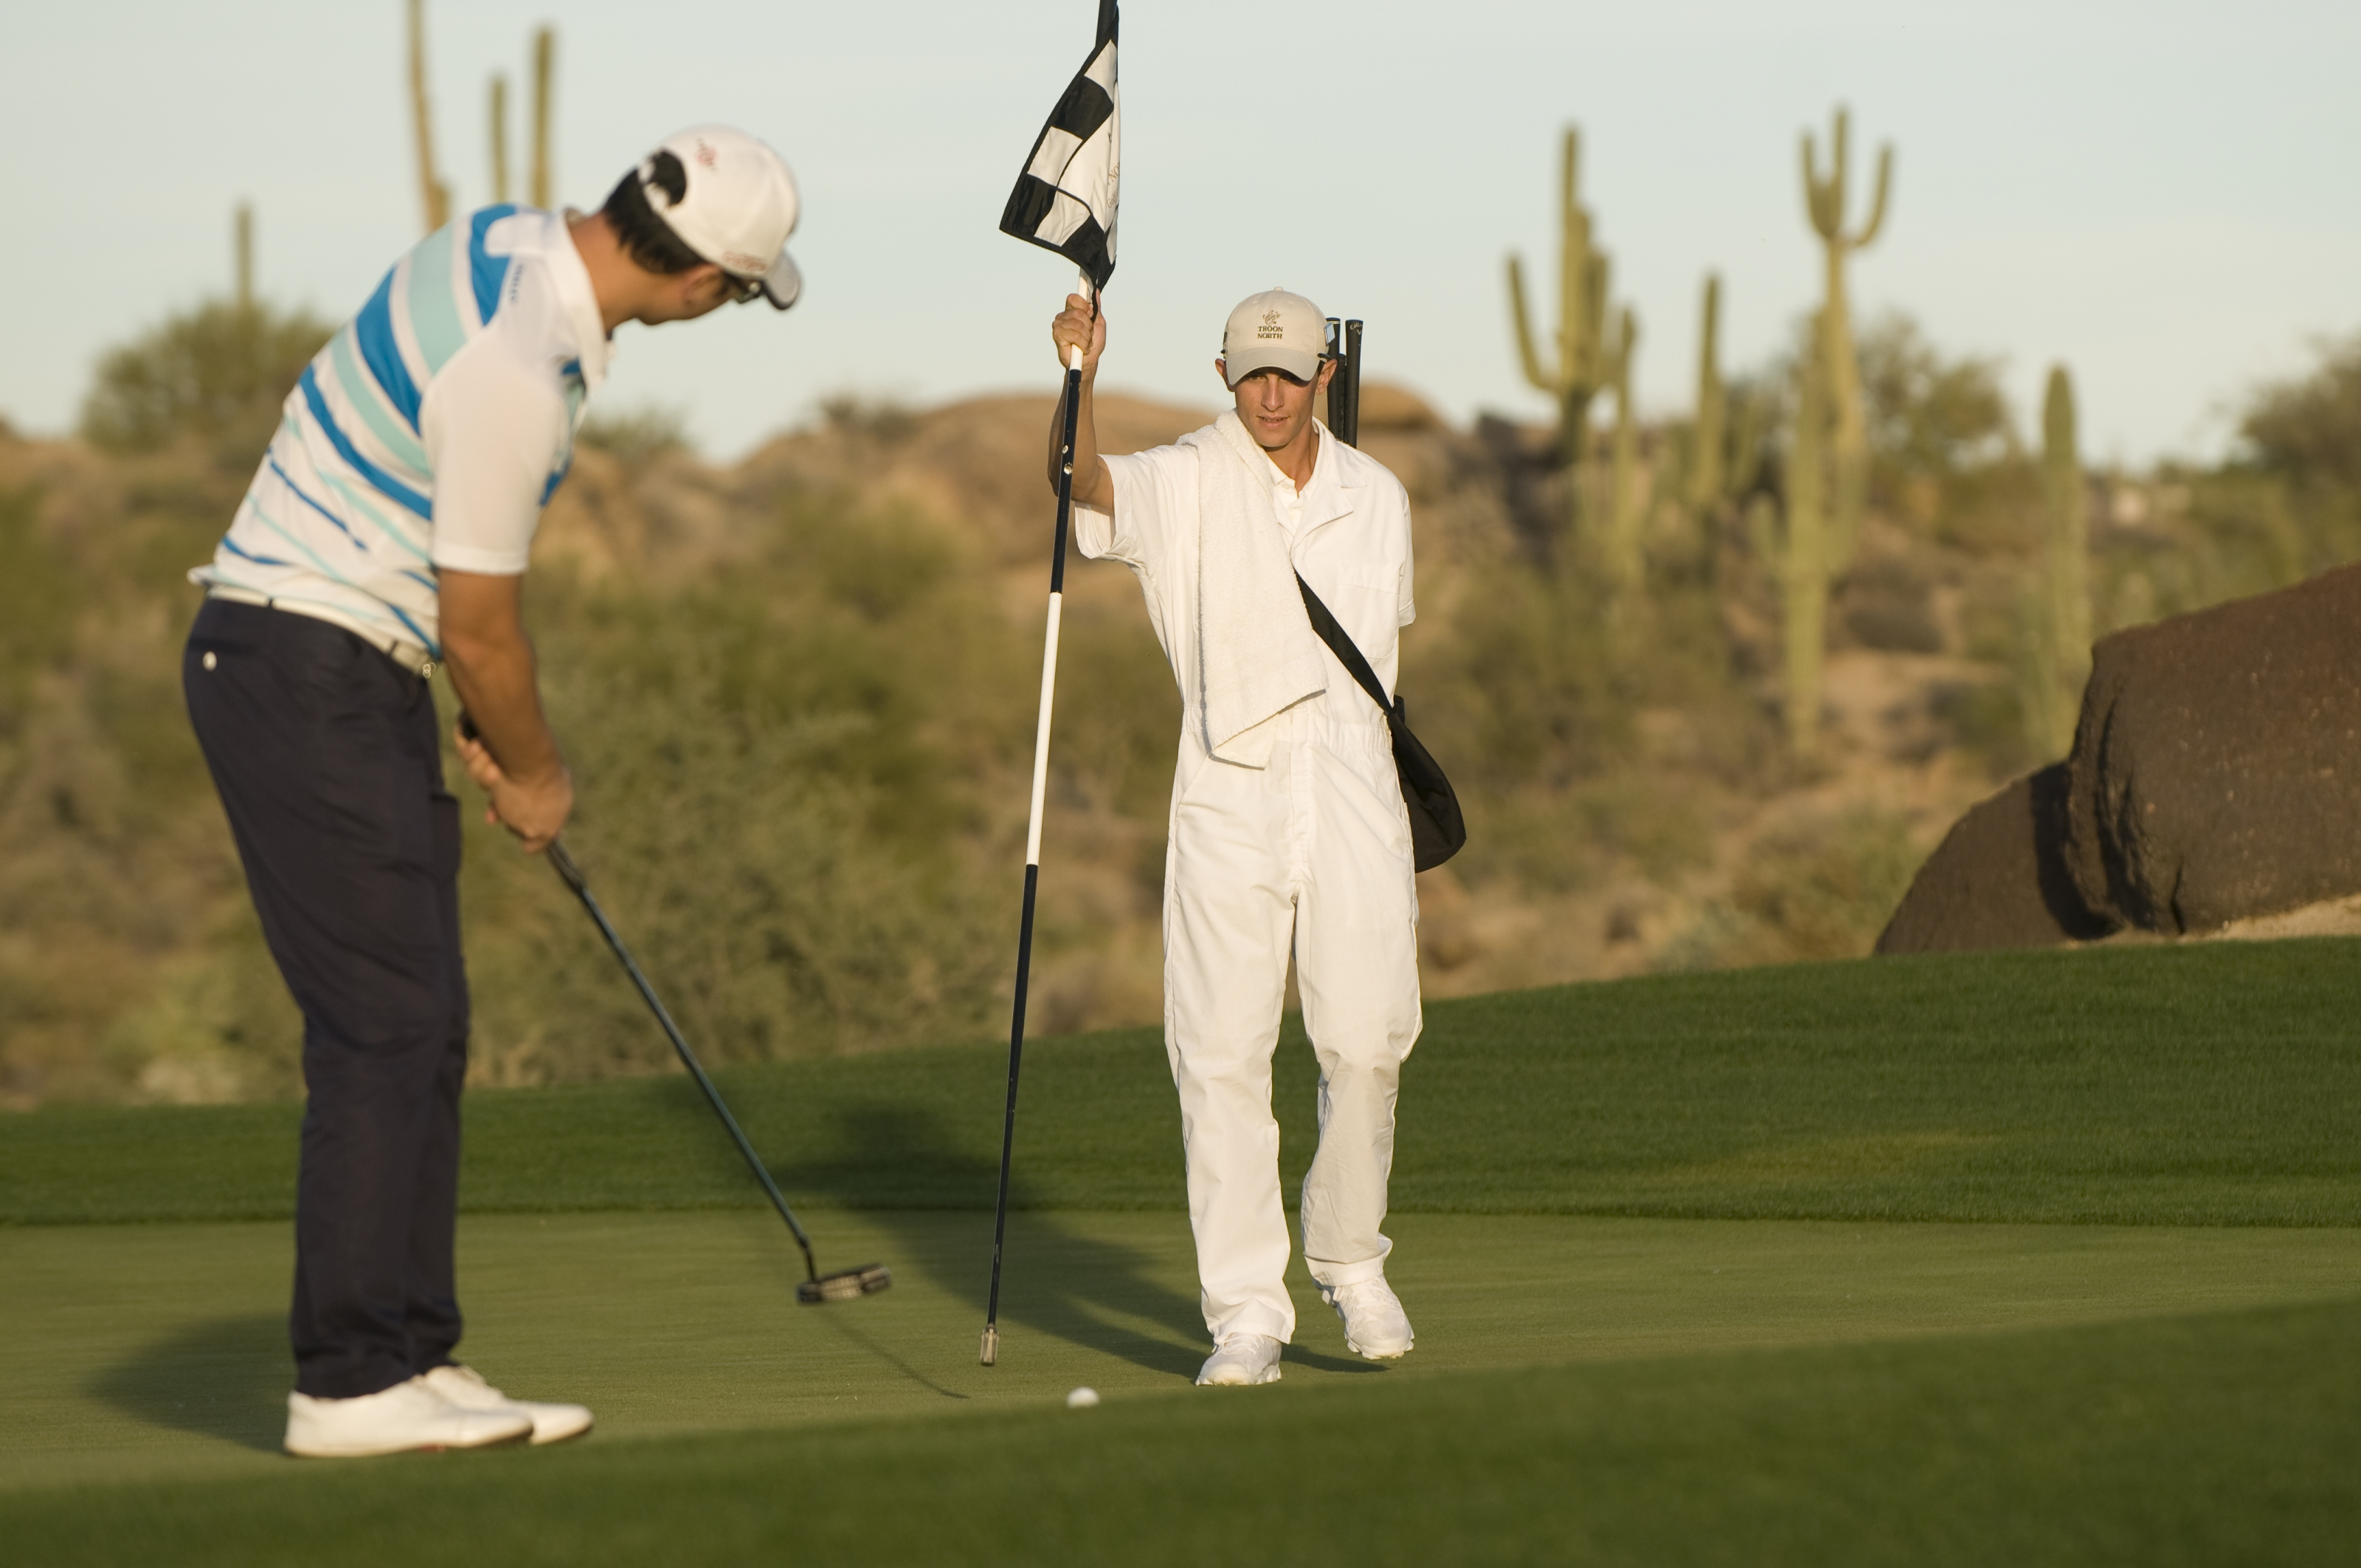 TROON EXPANDS CADDIE SERVICES PROGRAM TO 11 AFFILIATED ARIZONA FACILITIES DURING 2017/2018 SEASON